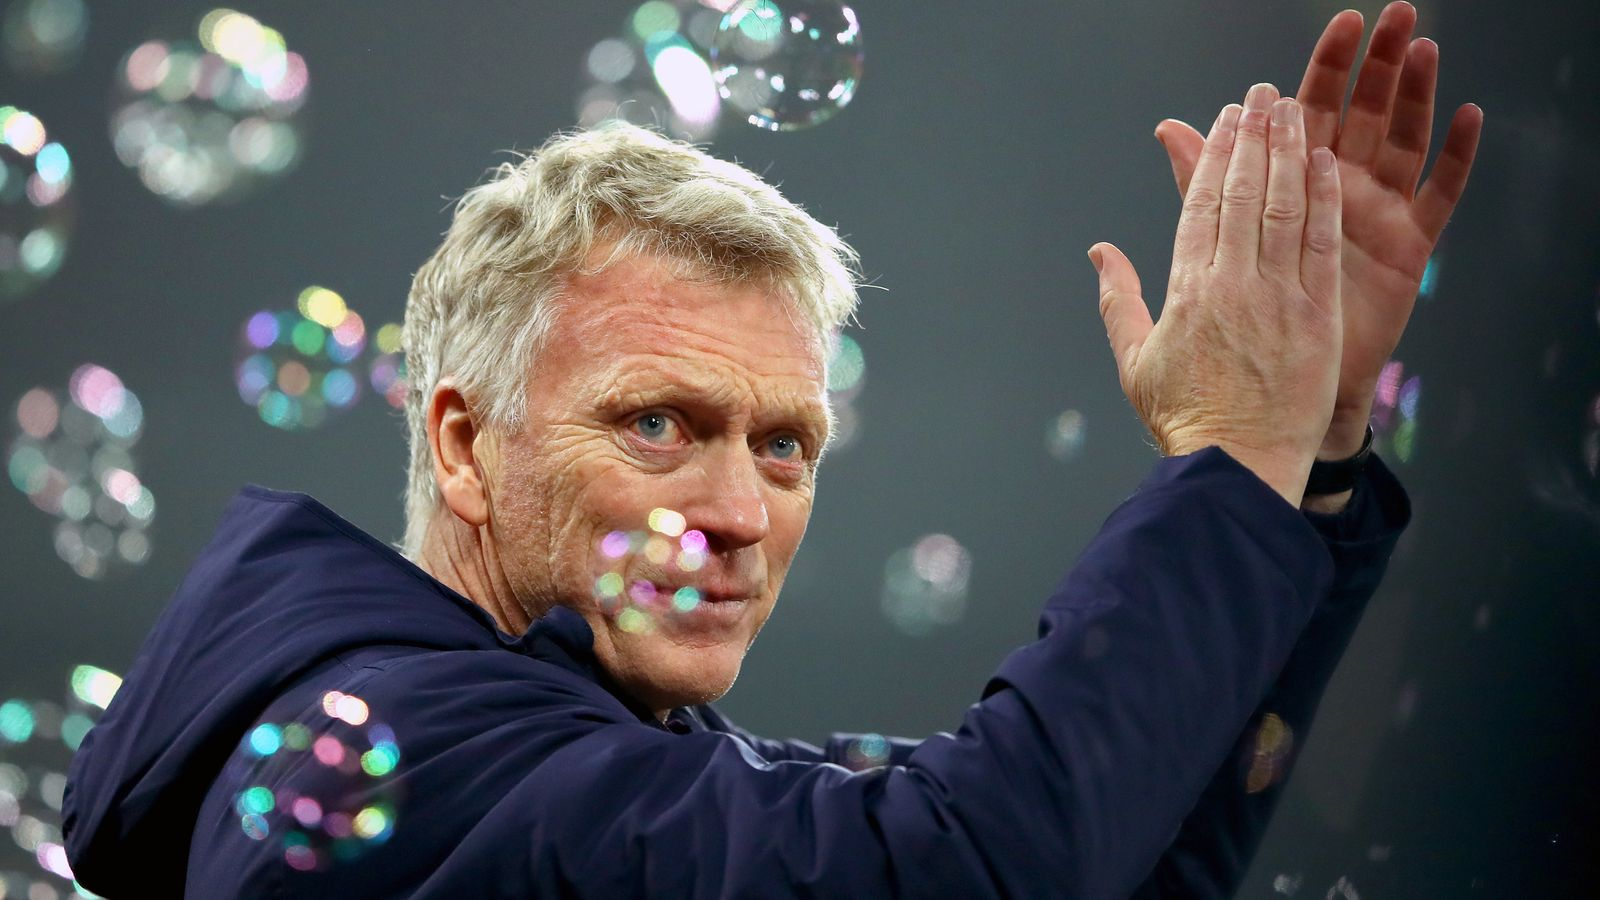 David Moyes urges West Ham fans to 'stick with us' ahead of Manchester City trip